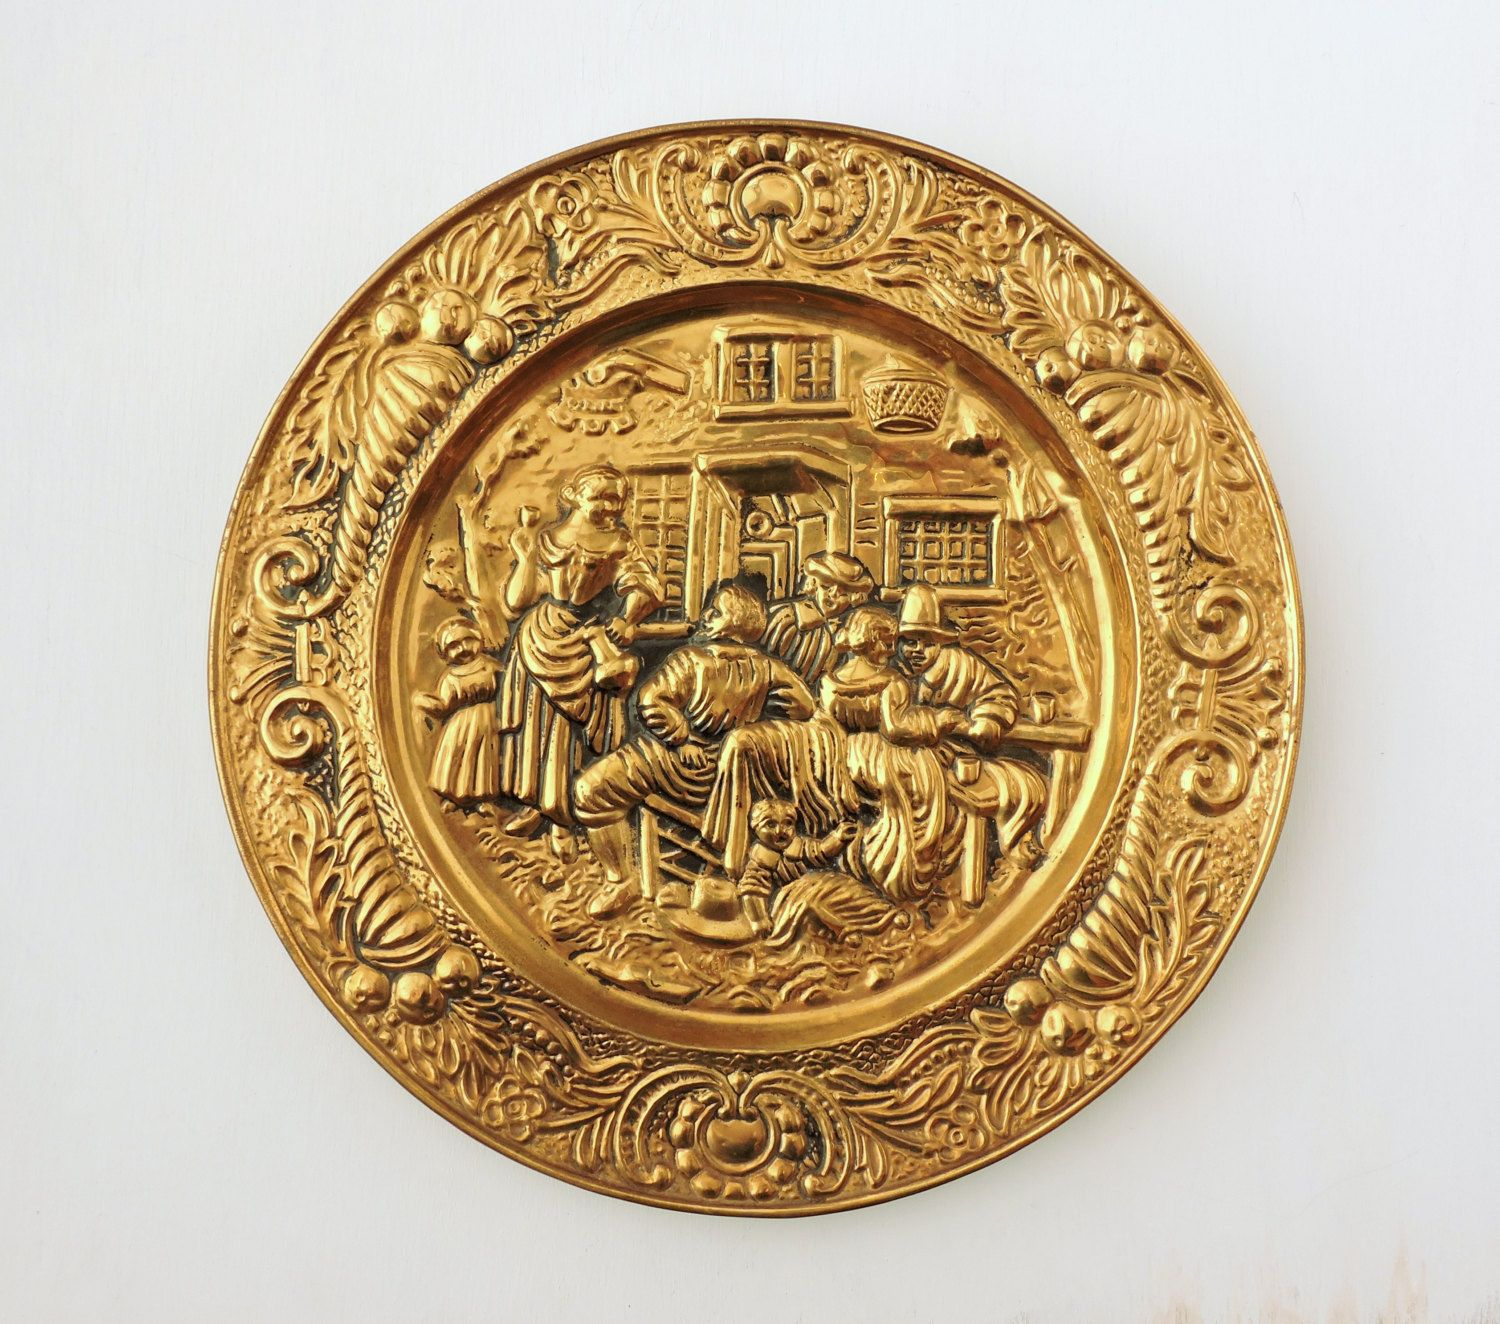 Vintage Brass Plate Made In England Large Hammered Brass Plaque English Brass Wall Hanging Brass Charger Ra Brass Wall Hanging Vintage Brass Brass Plaques